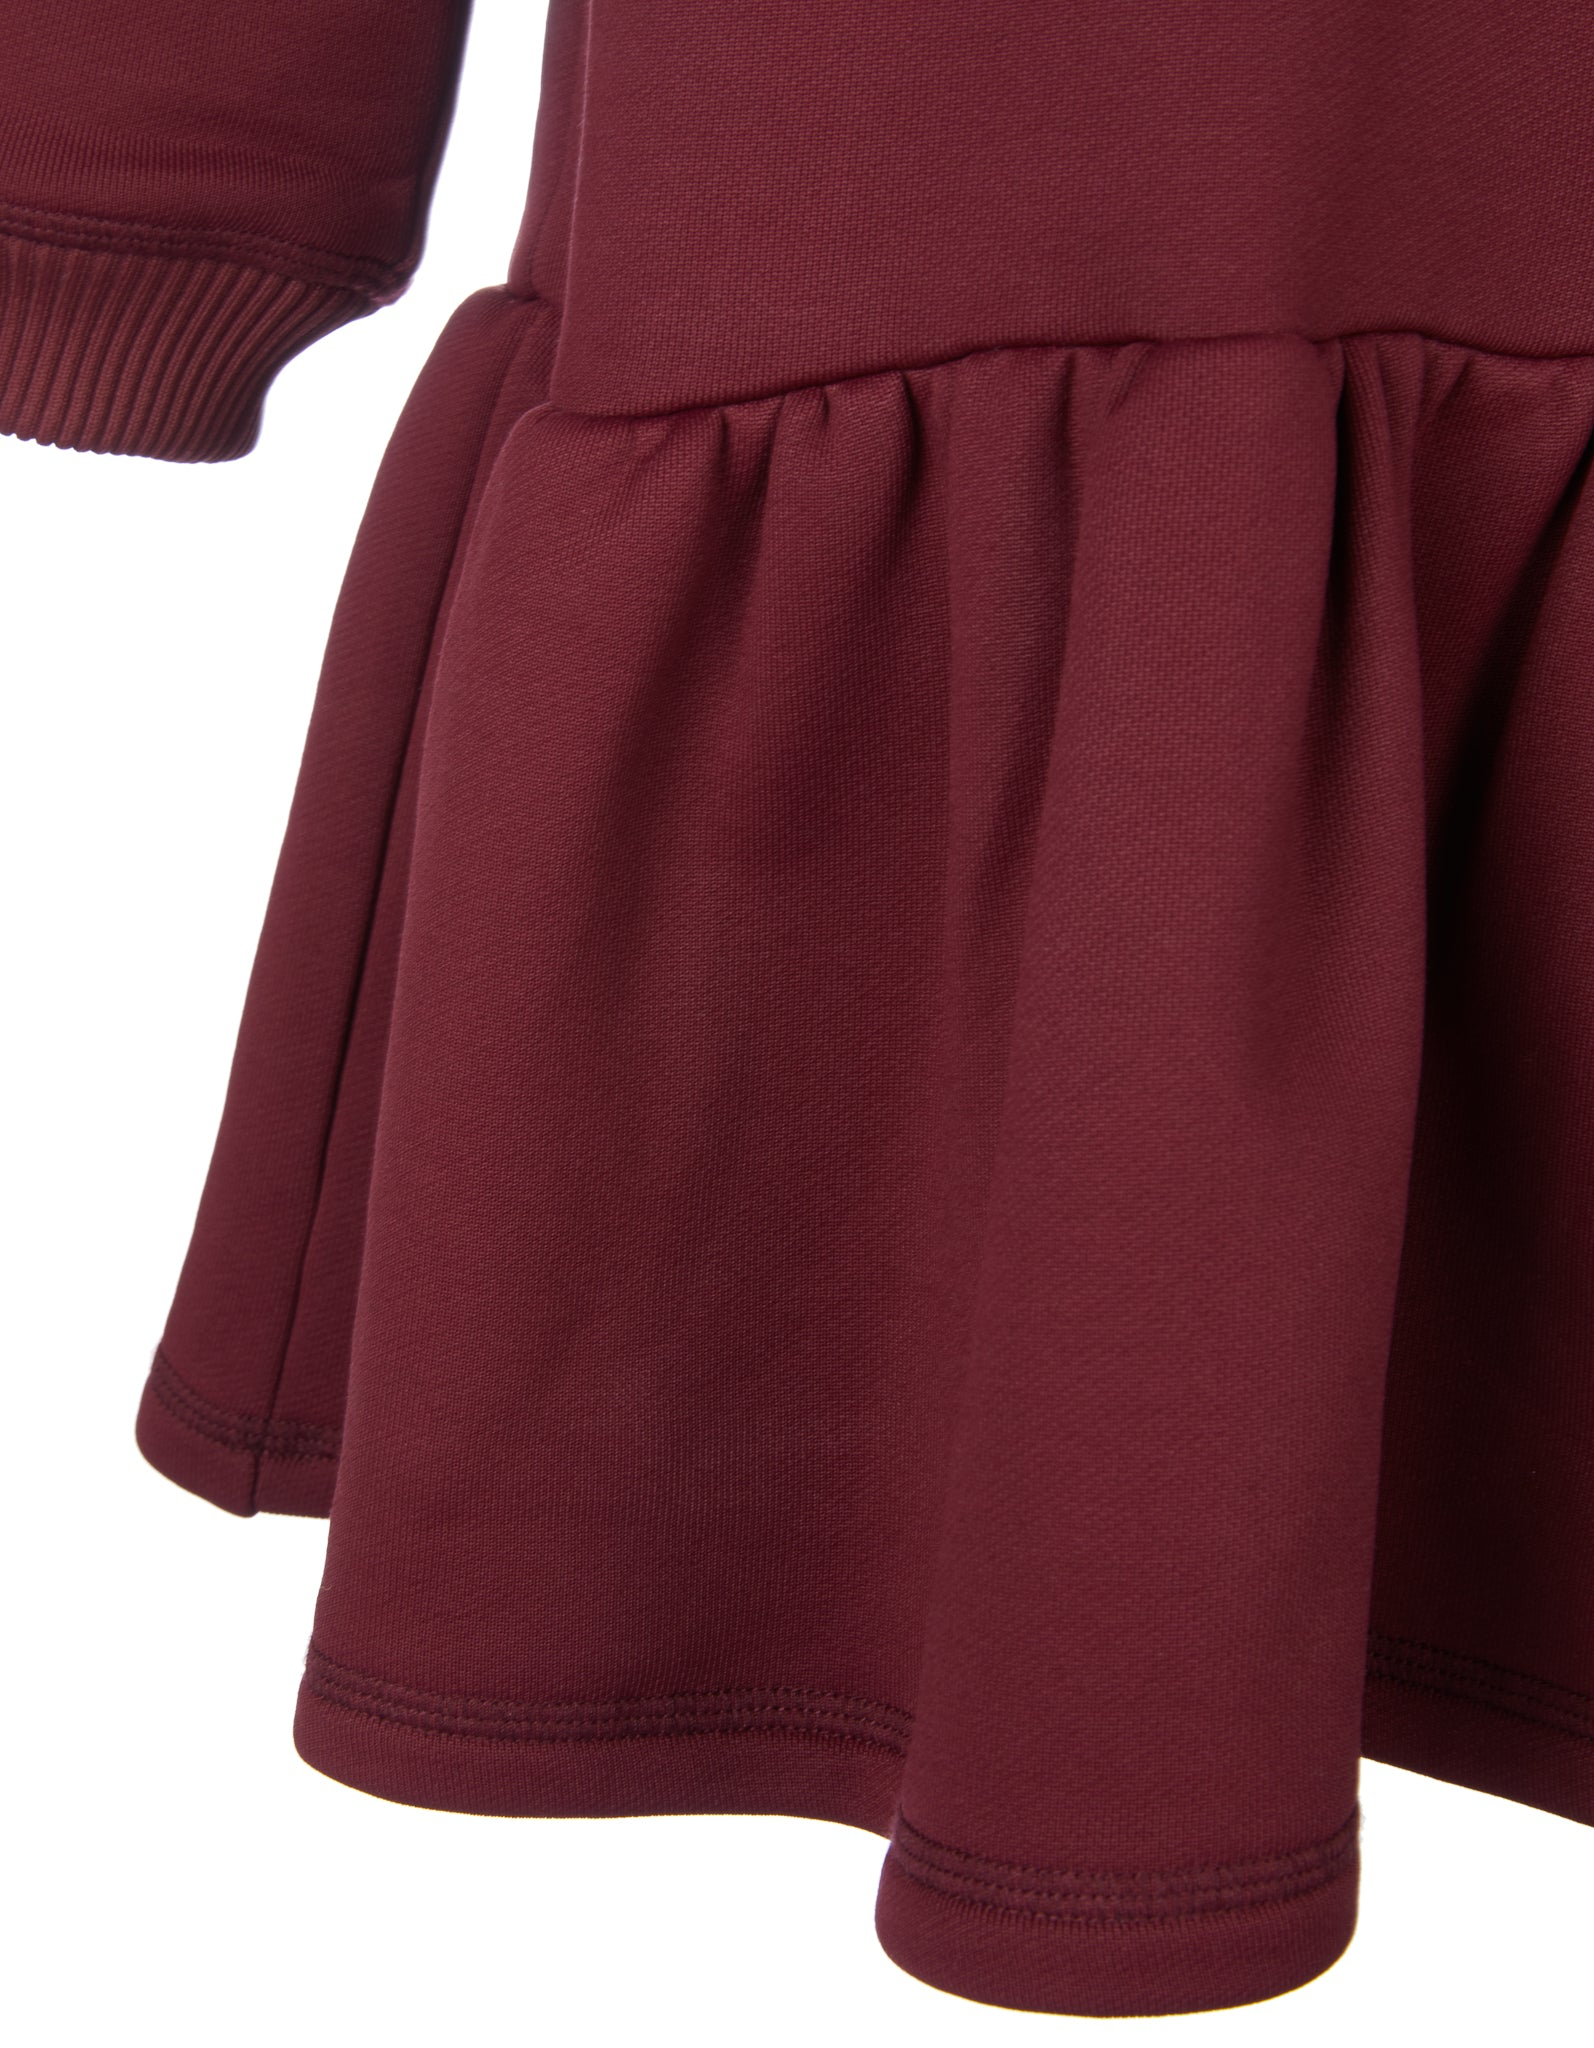 M'A KIDS CREW NECK GATHERED DRESS IN BURGUNDY